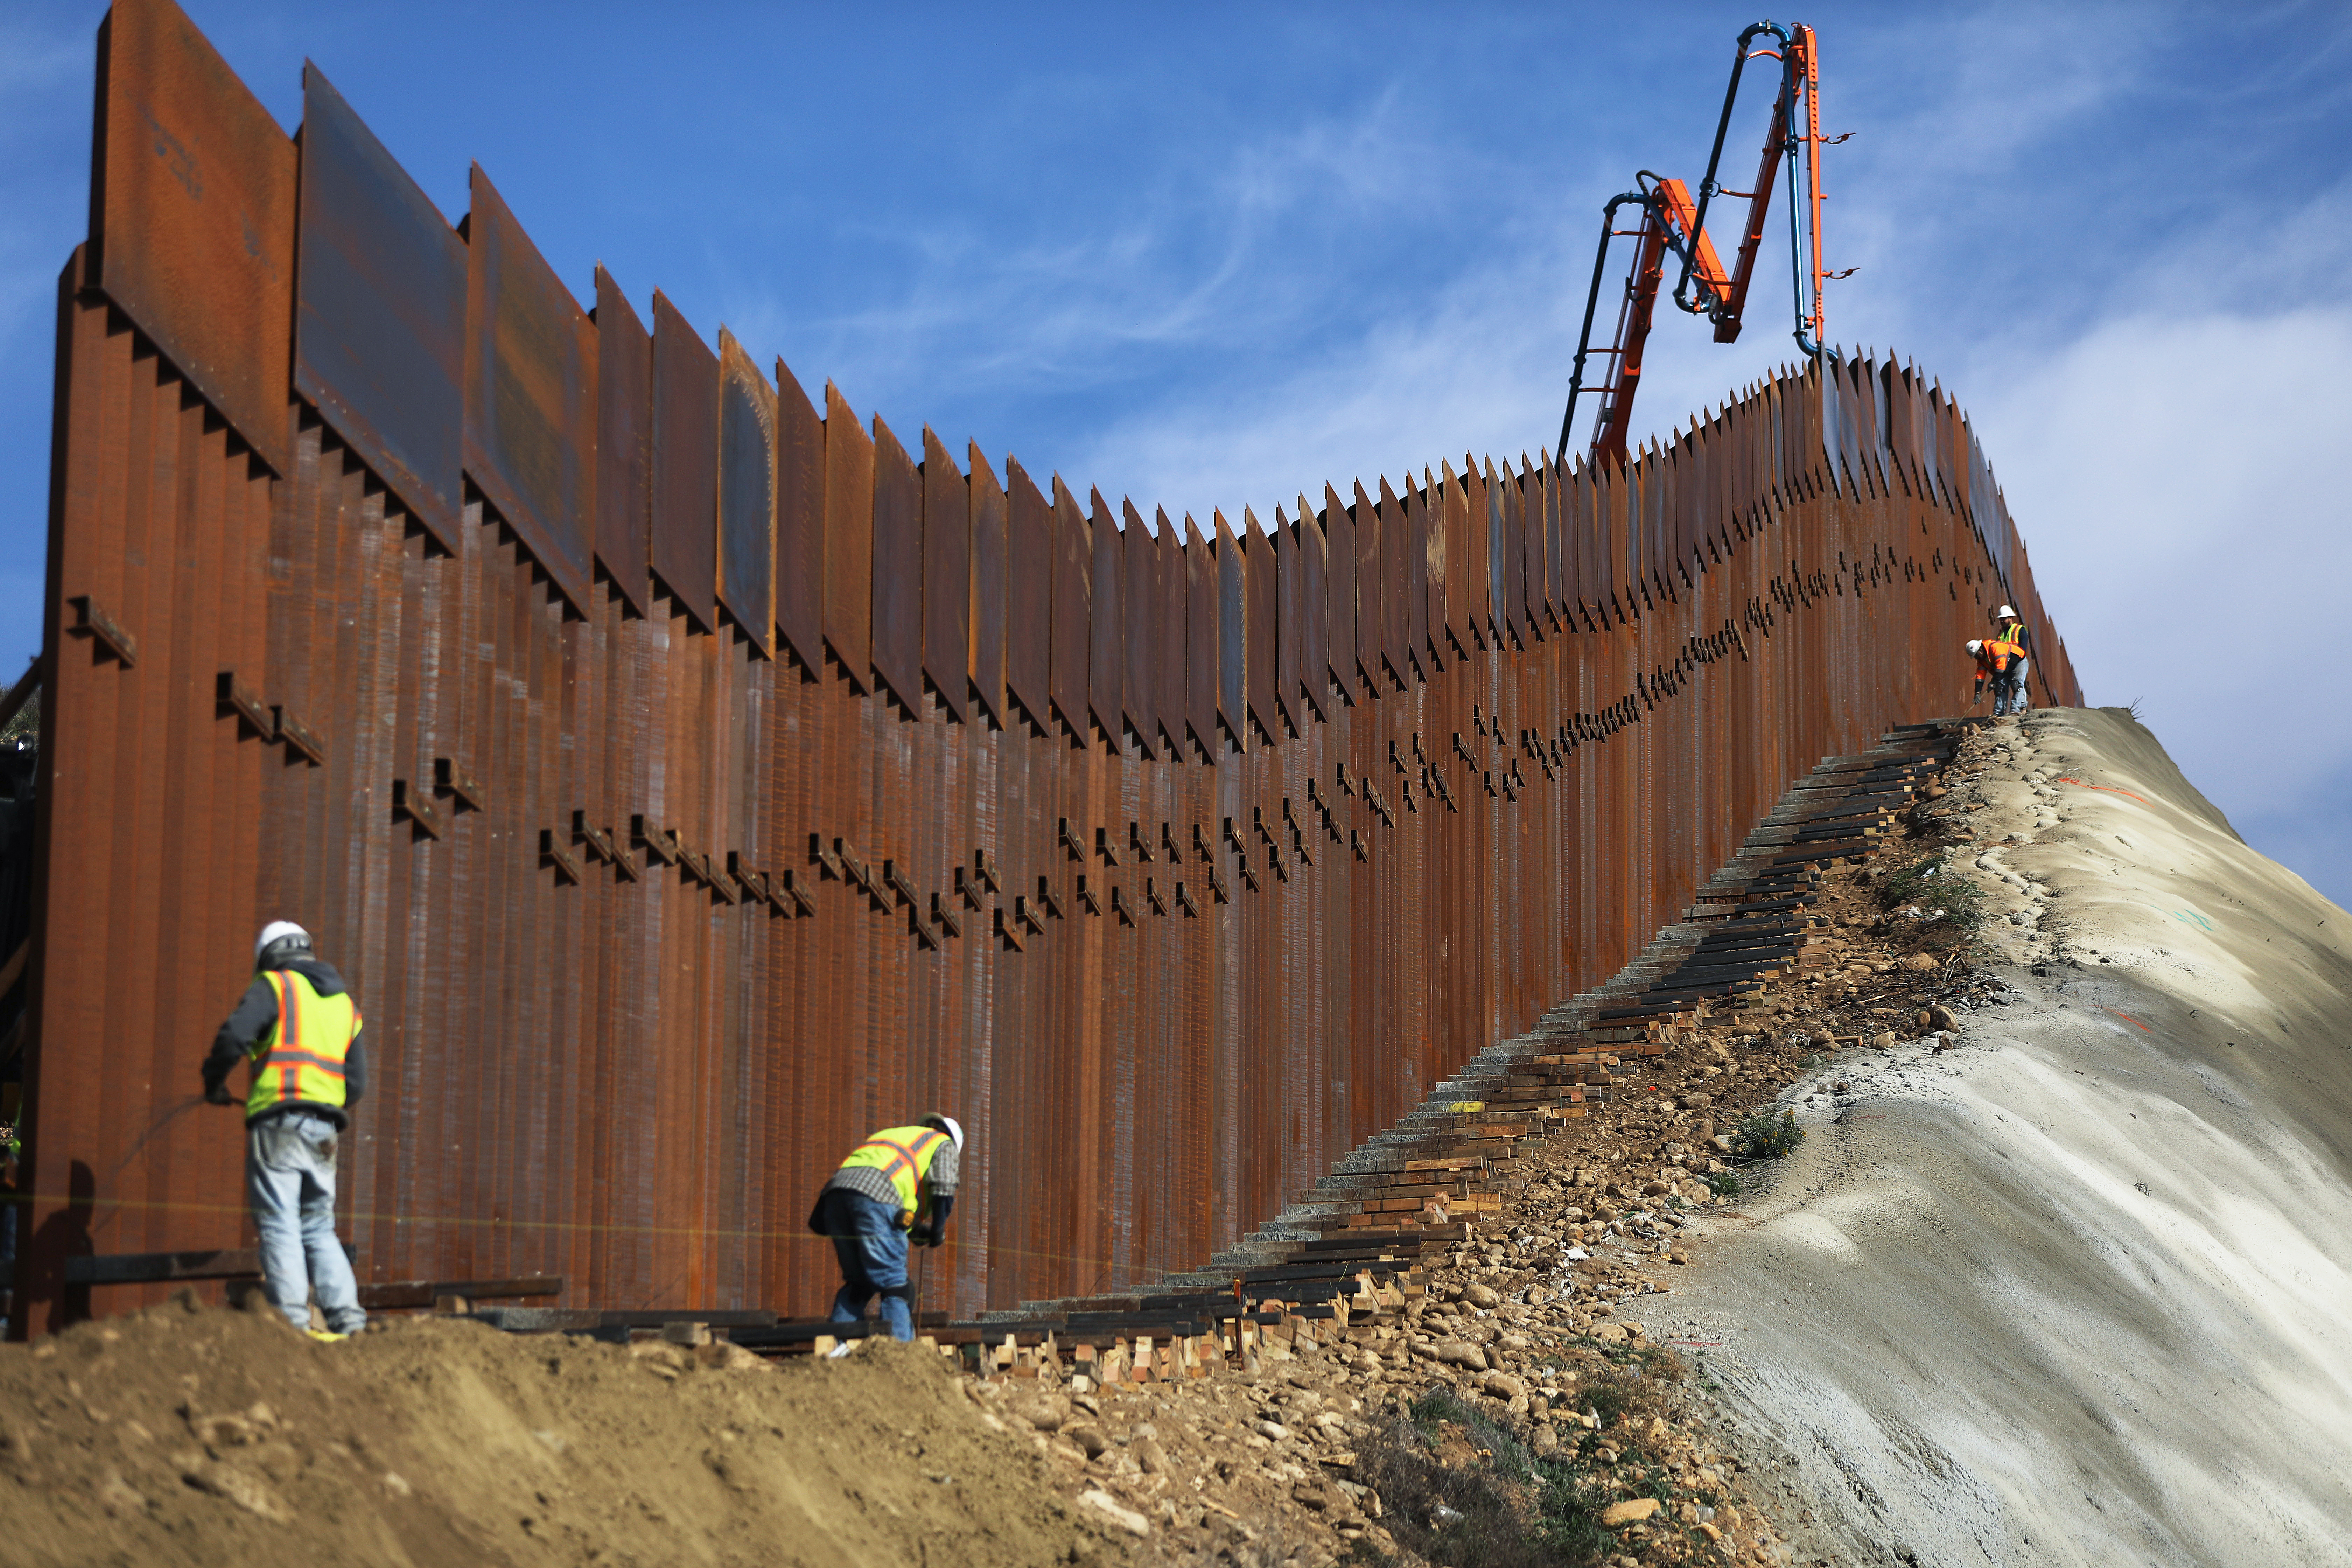 A construction crew works as new sections of the U.S.-Mexico border barrier are installed on January 11, 2019. (Mario Tama/Getty Images)